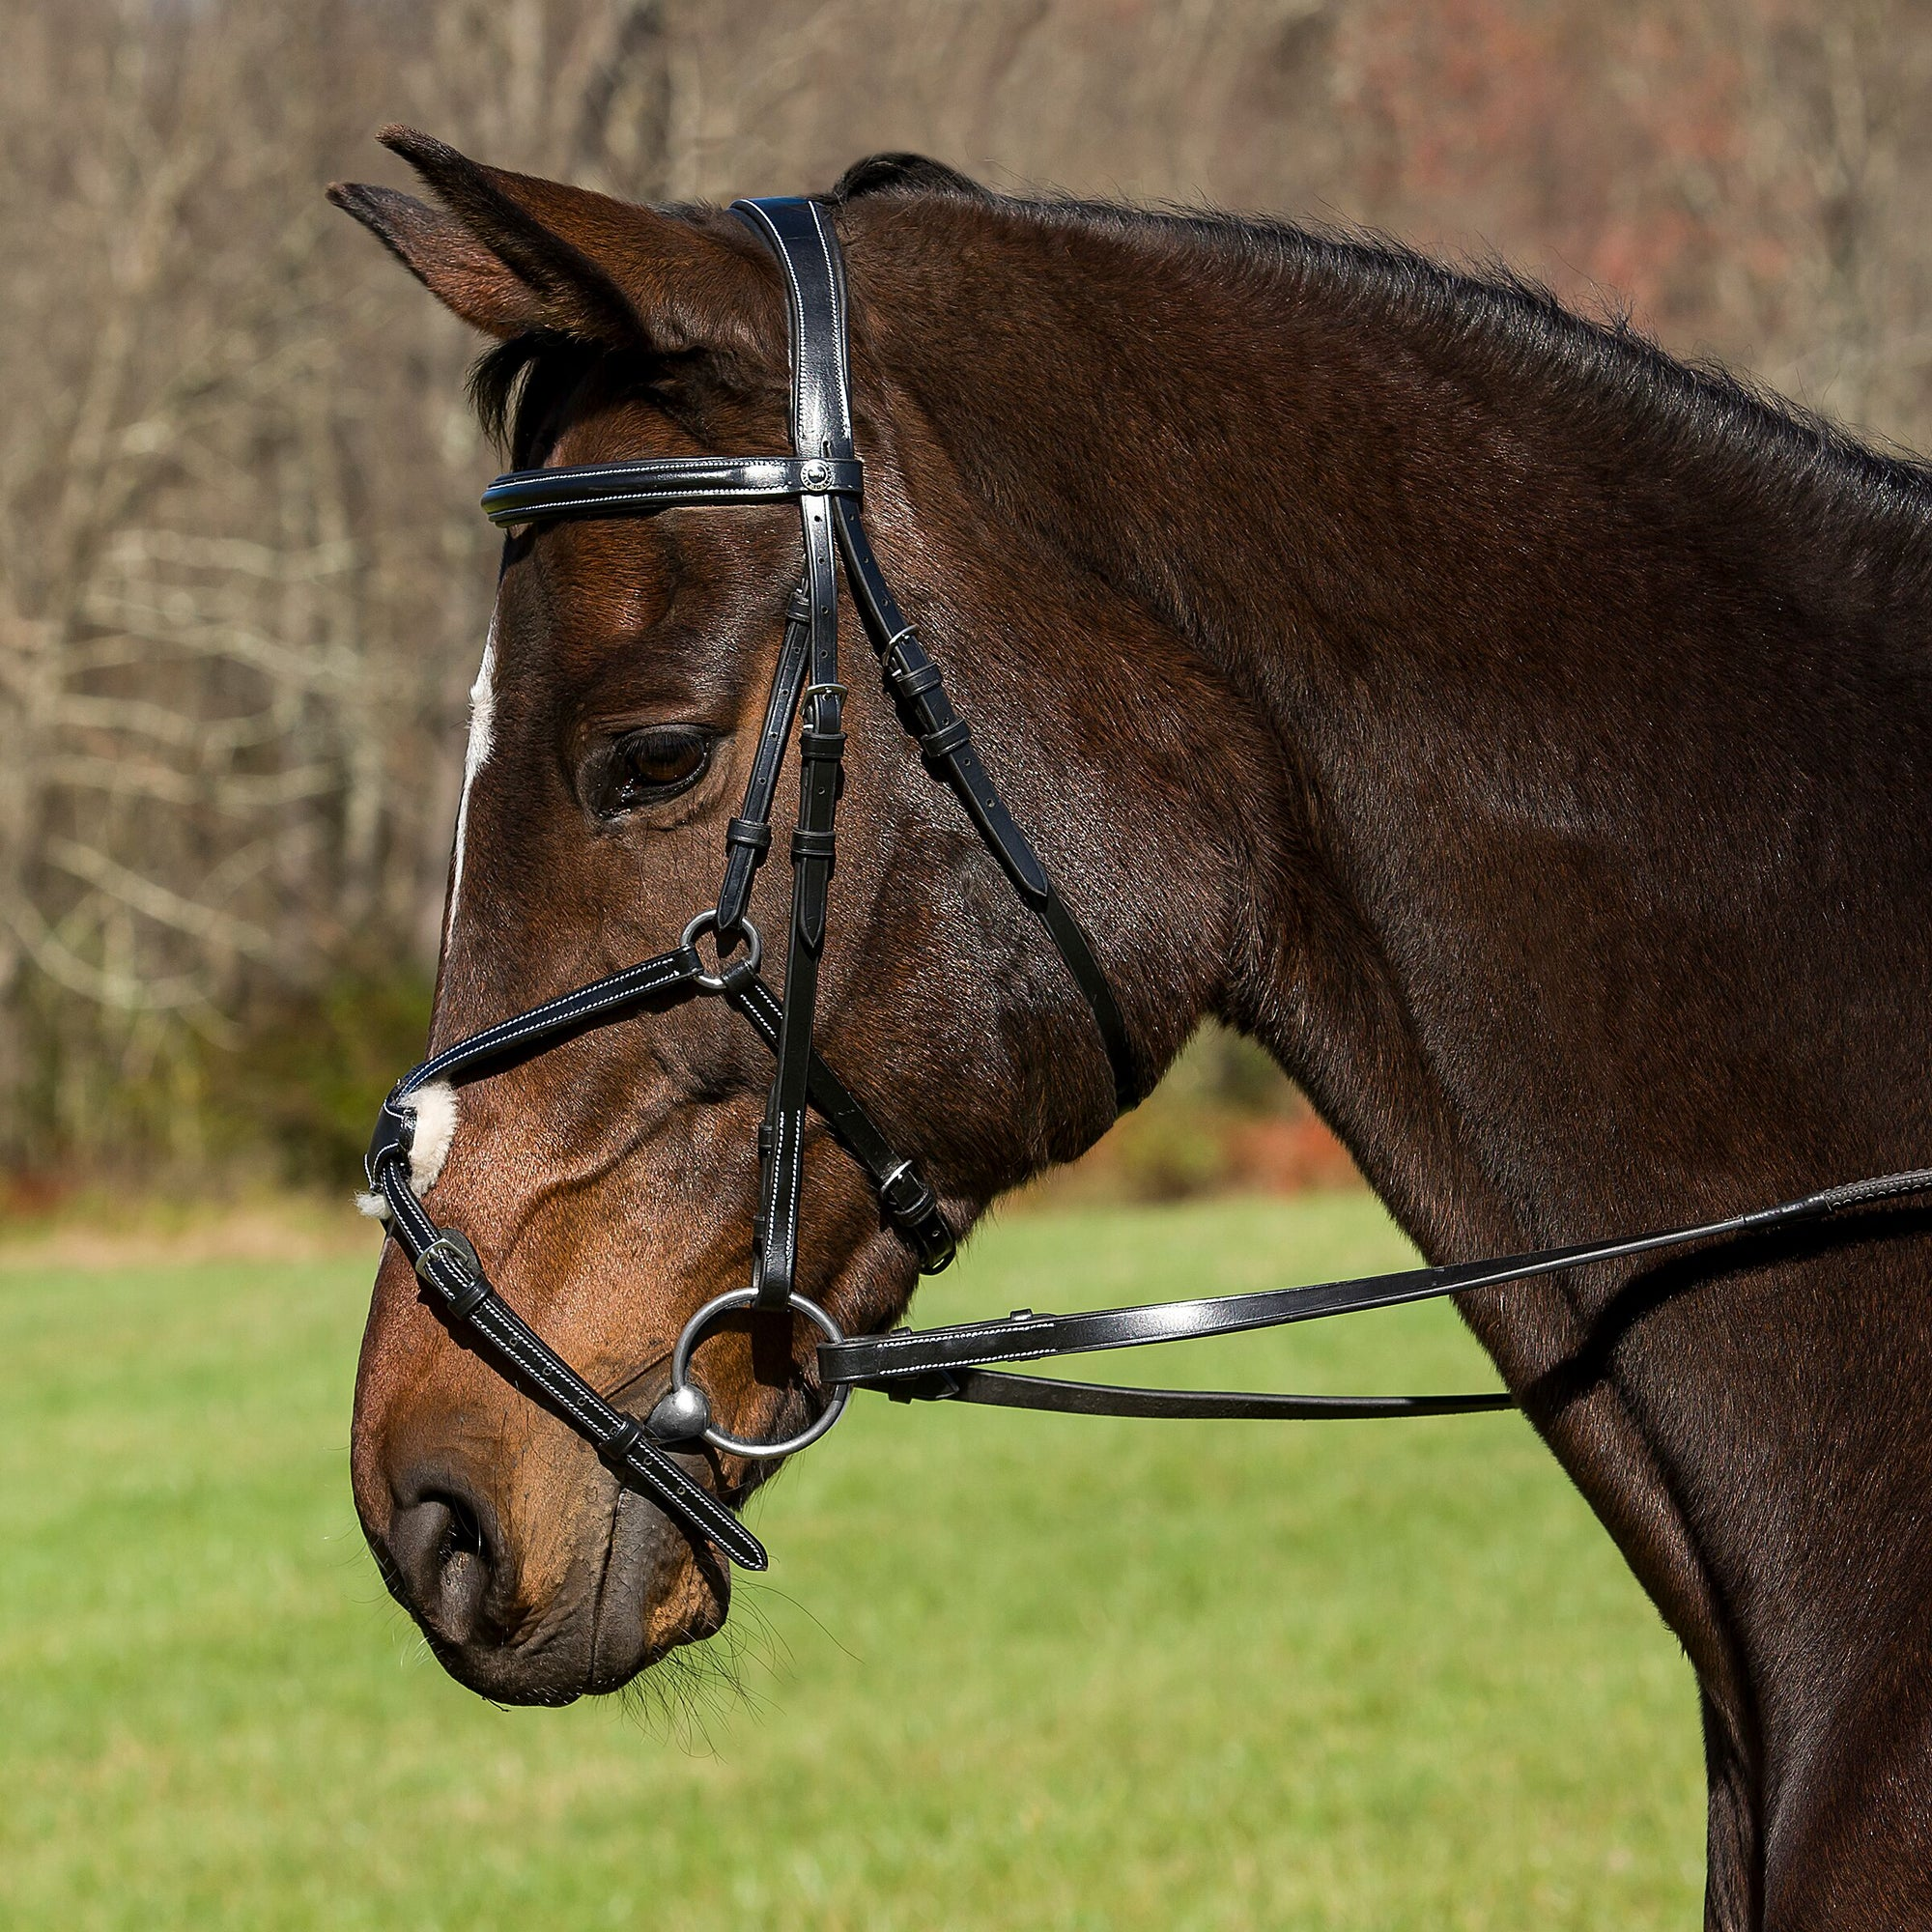 Henri de Rivel Pro Mono Crown Raised Figure Eight Bridle with Rubber Reins - Henri de Rivel - Breeches.com